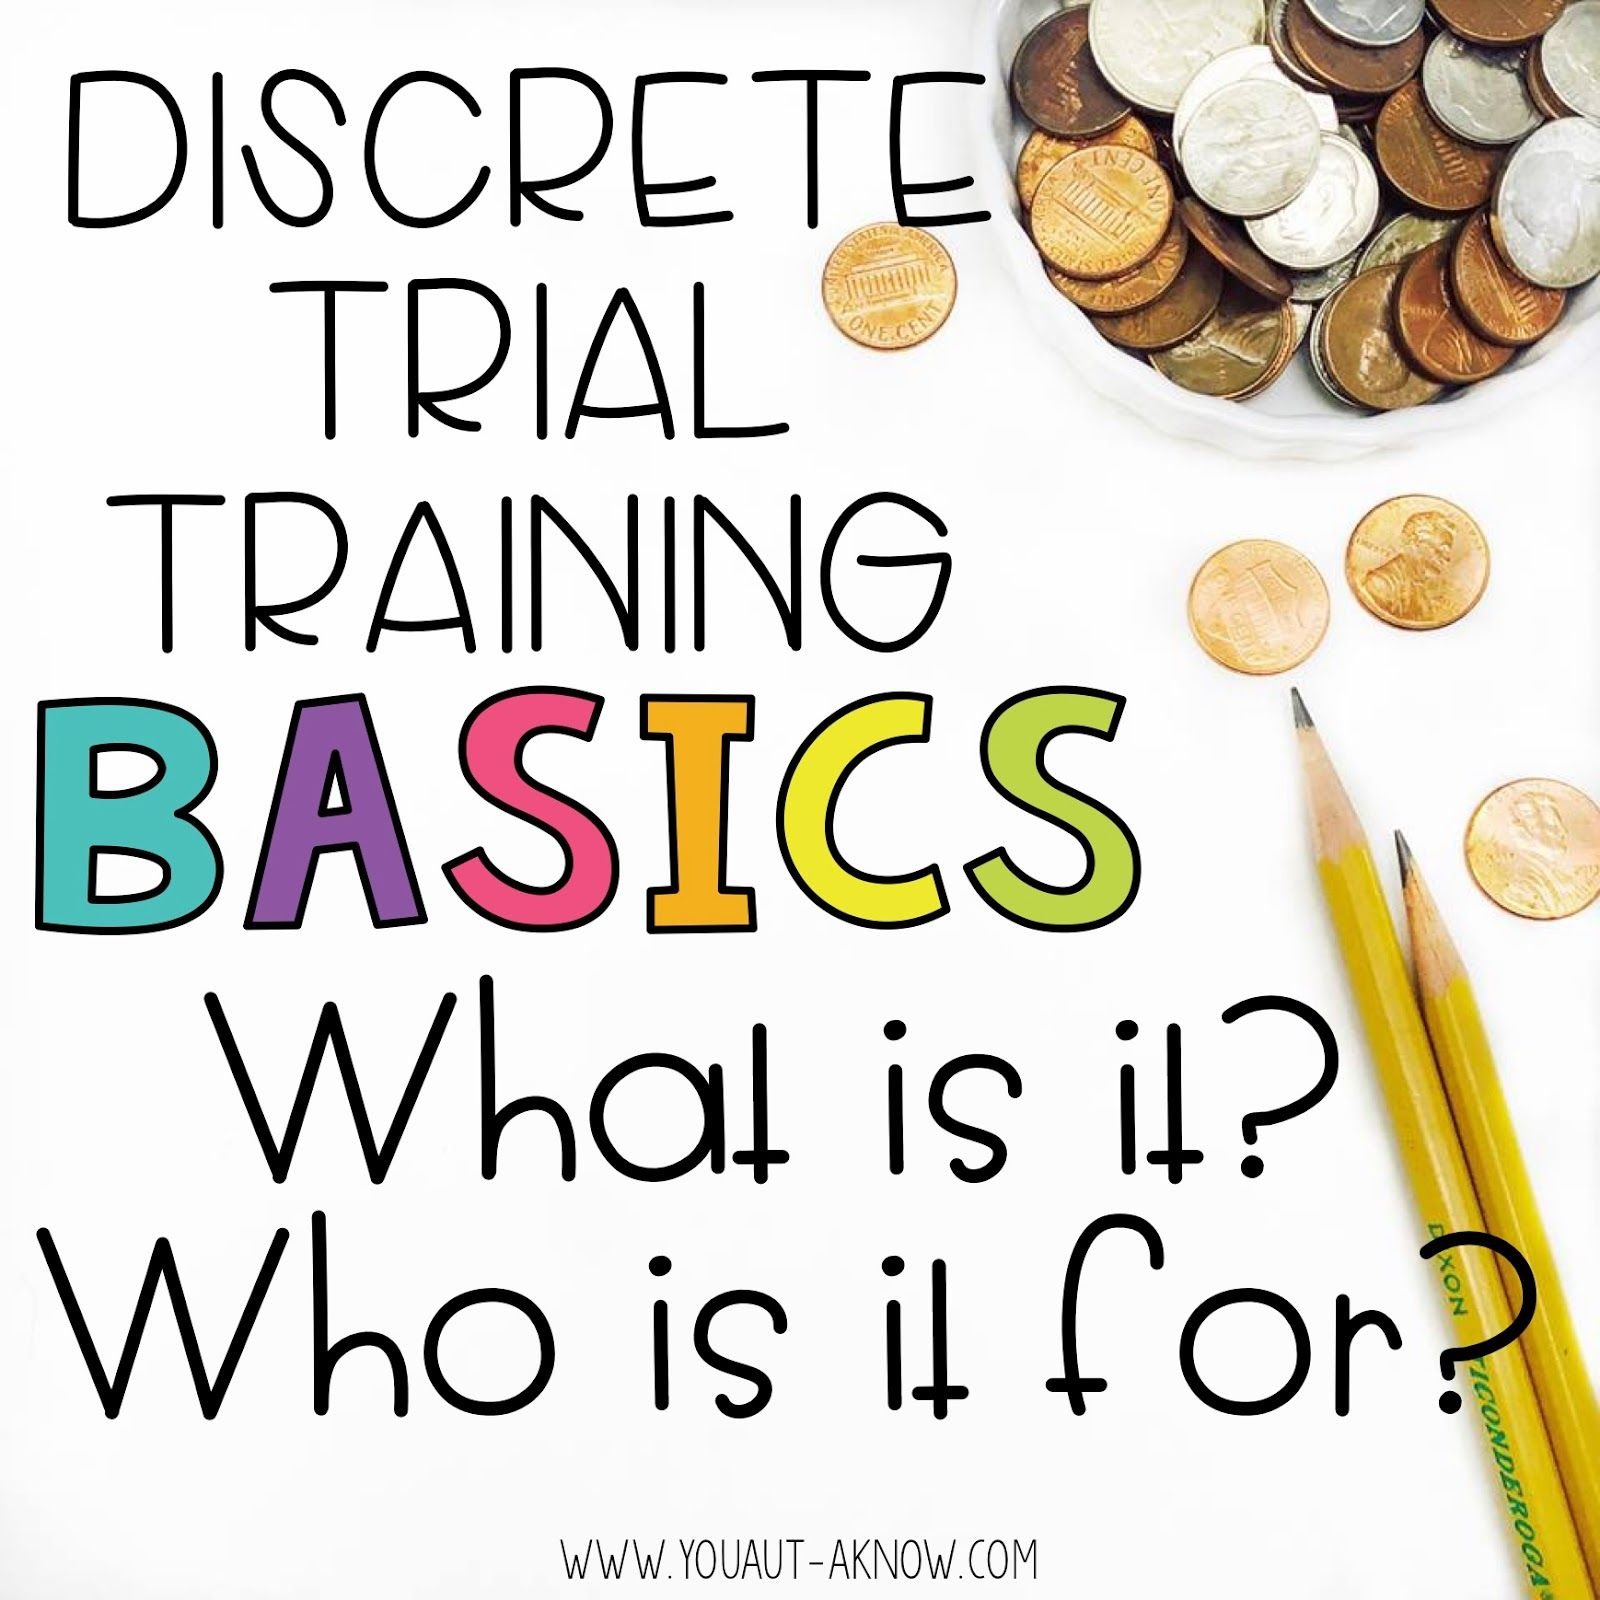 Discrete Trial Basics What Is Discrete Trial Training Who is it